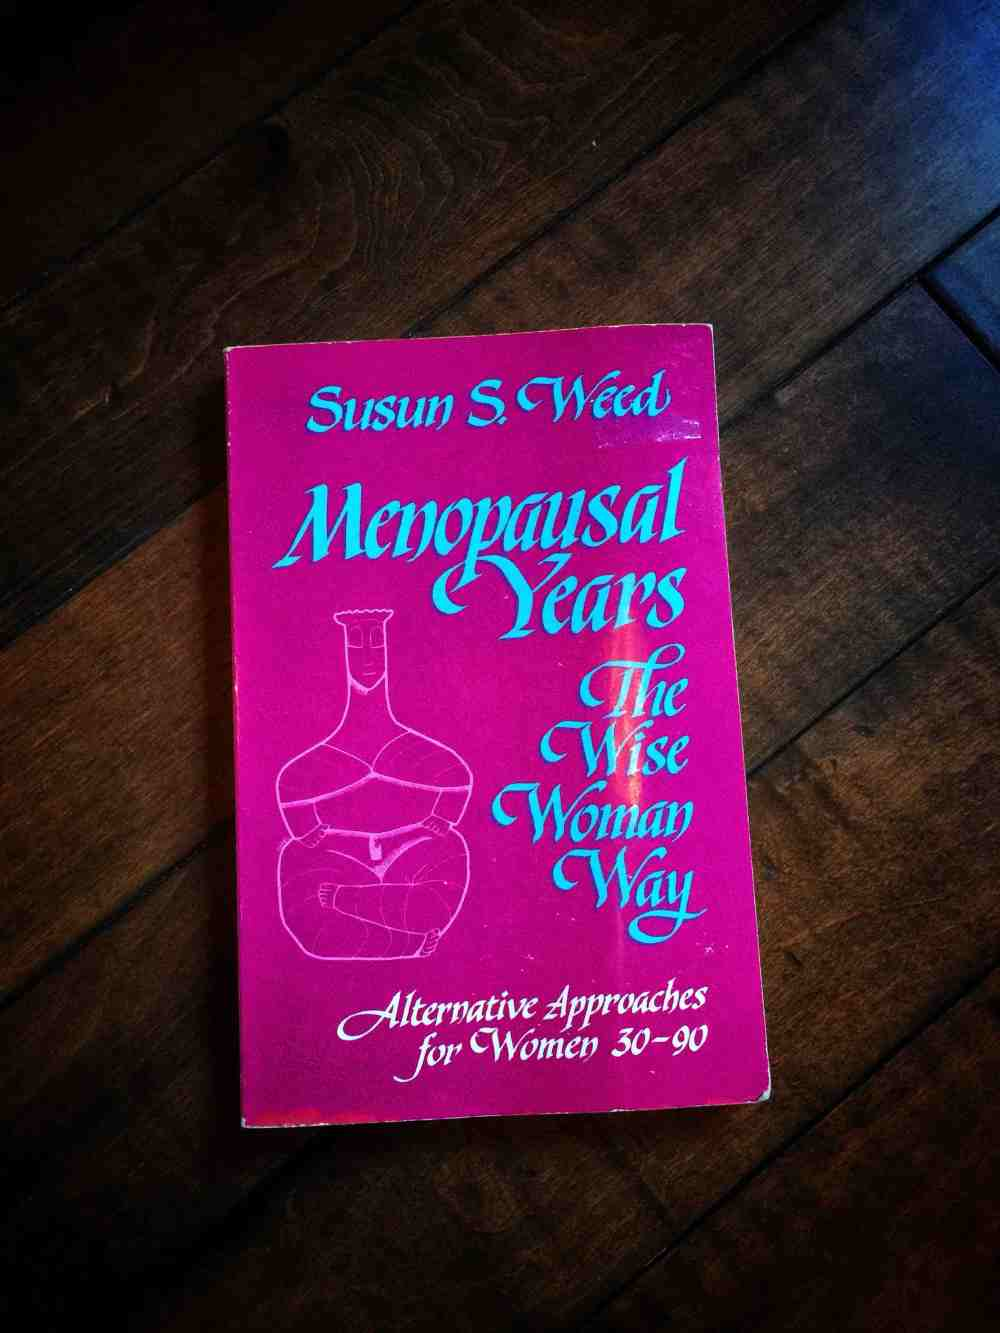 Menopausal Years: The Wise Woman Way: Alternative Approaches for Women 30-90